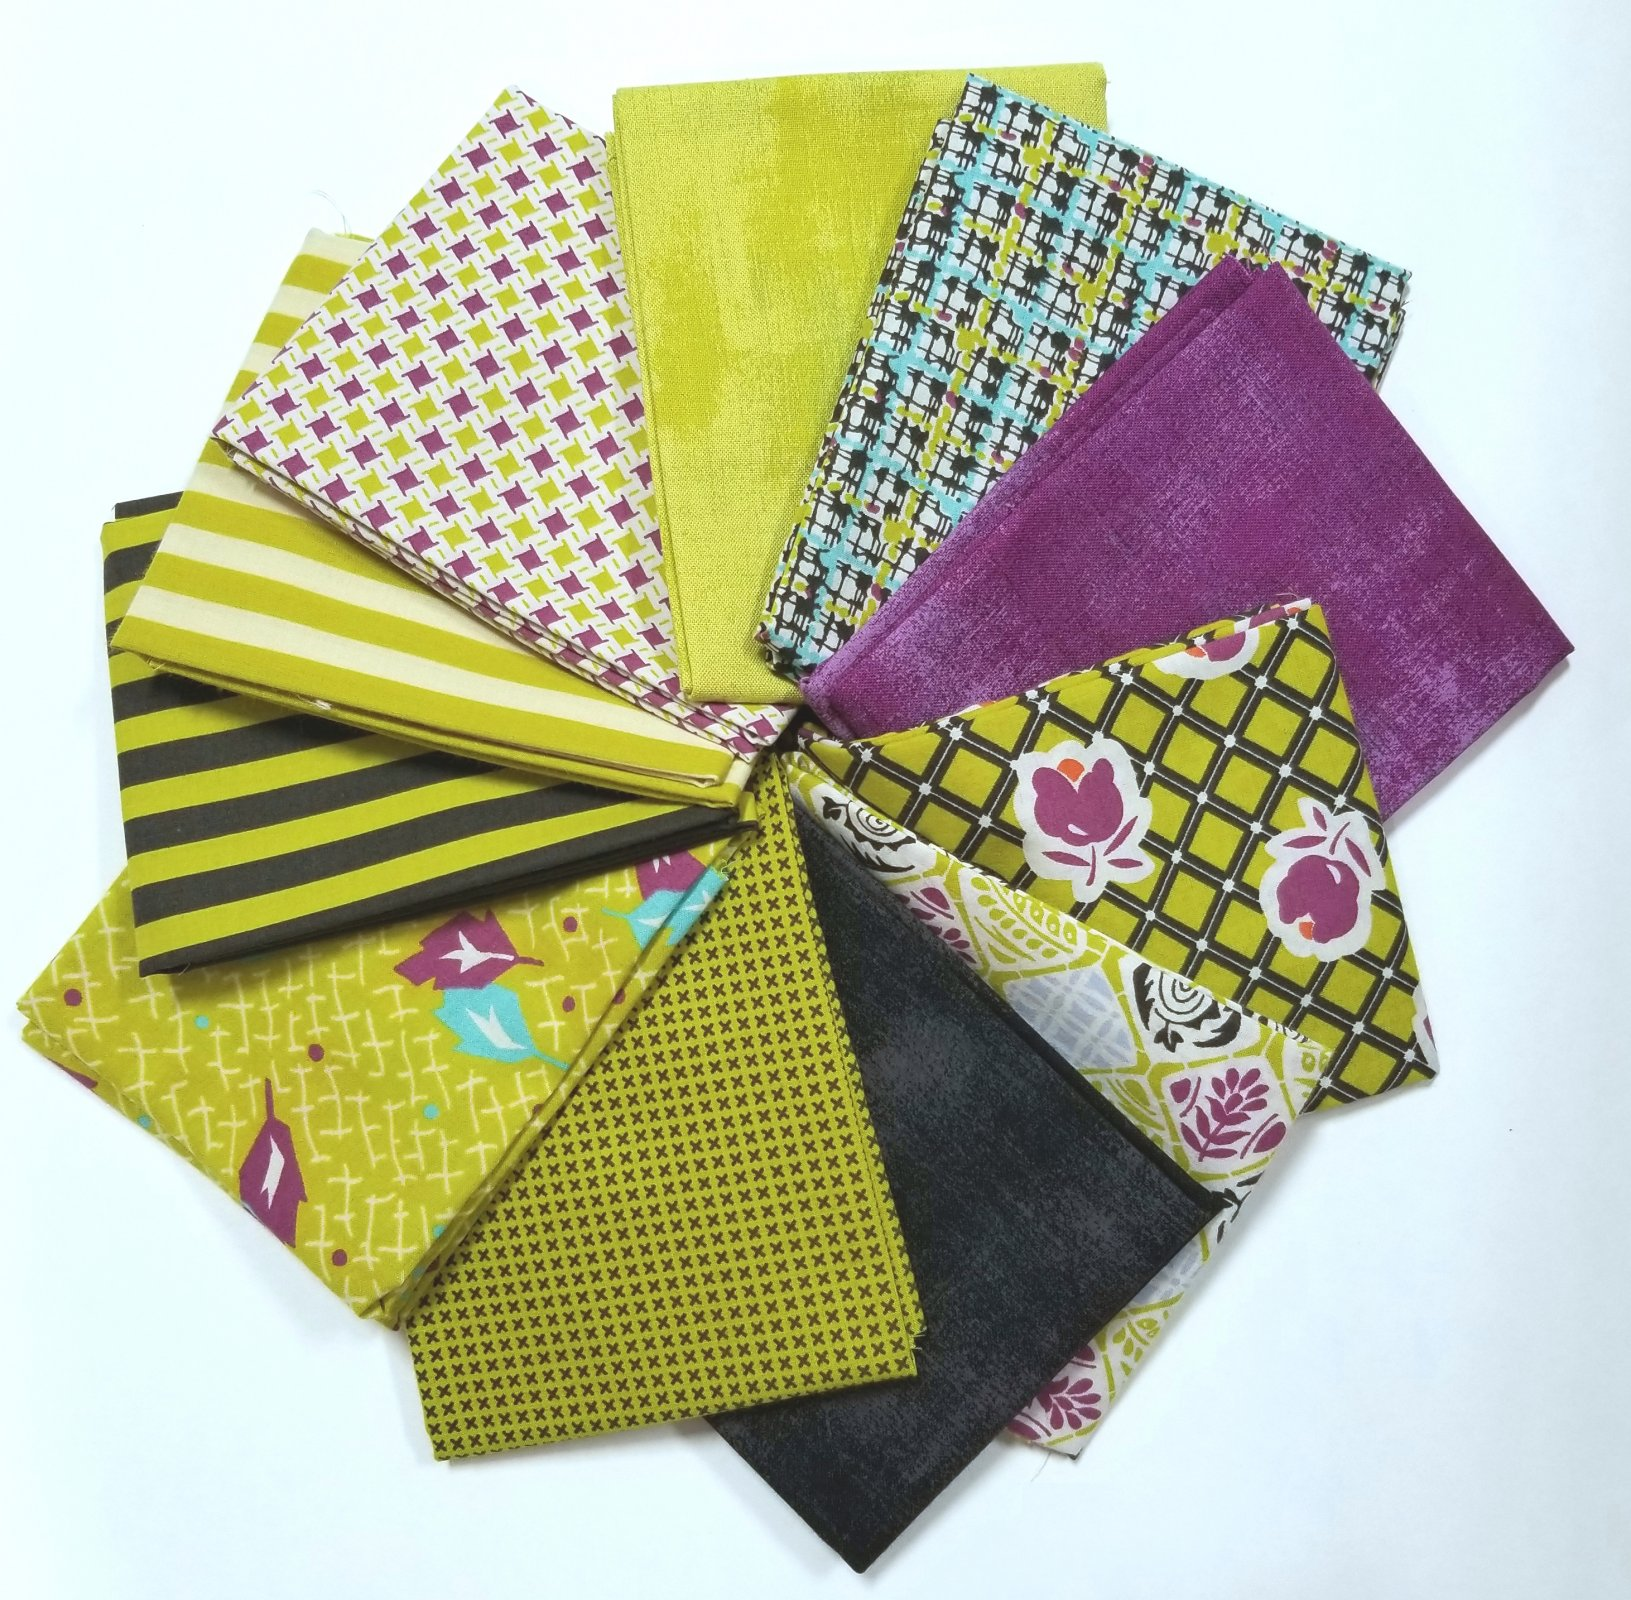 Fresh Picks: Moving On Lawns Fat Quarter Bundle